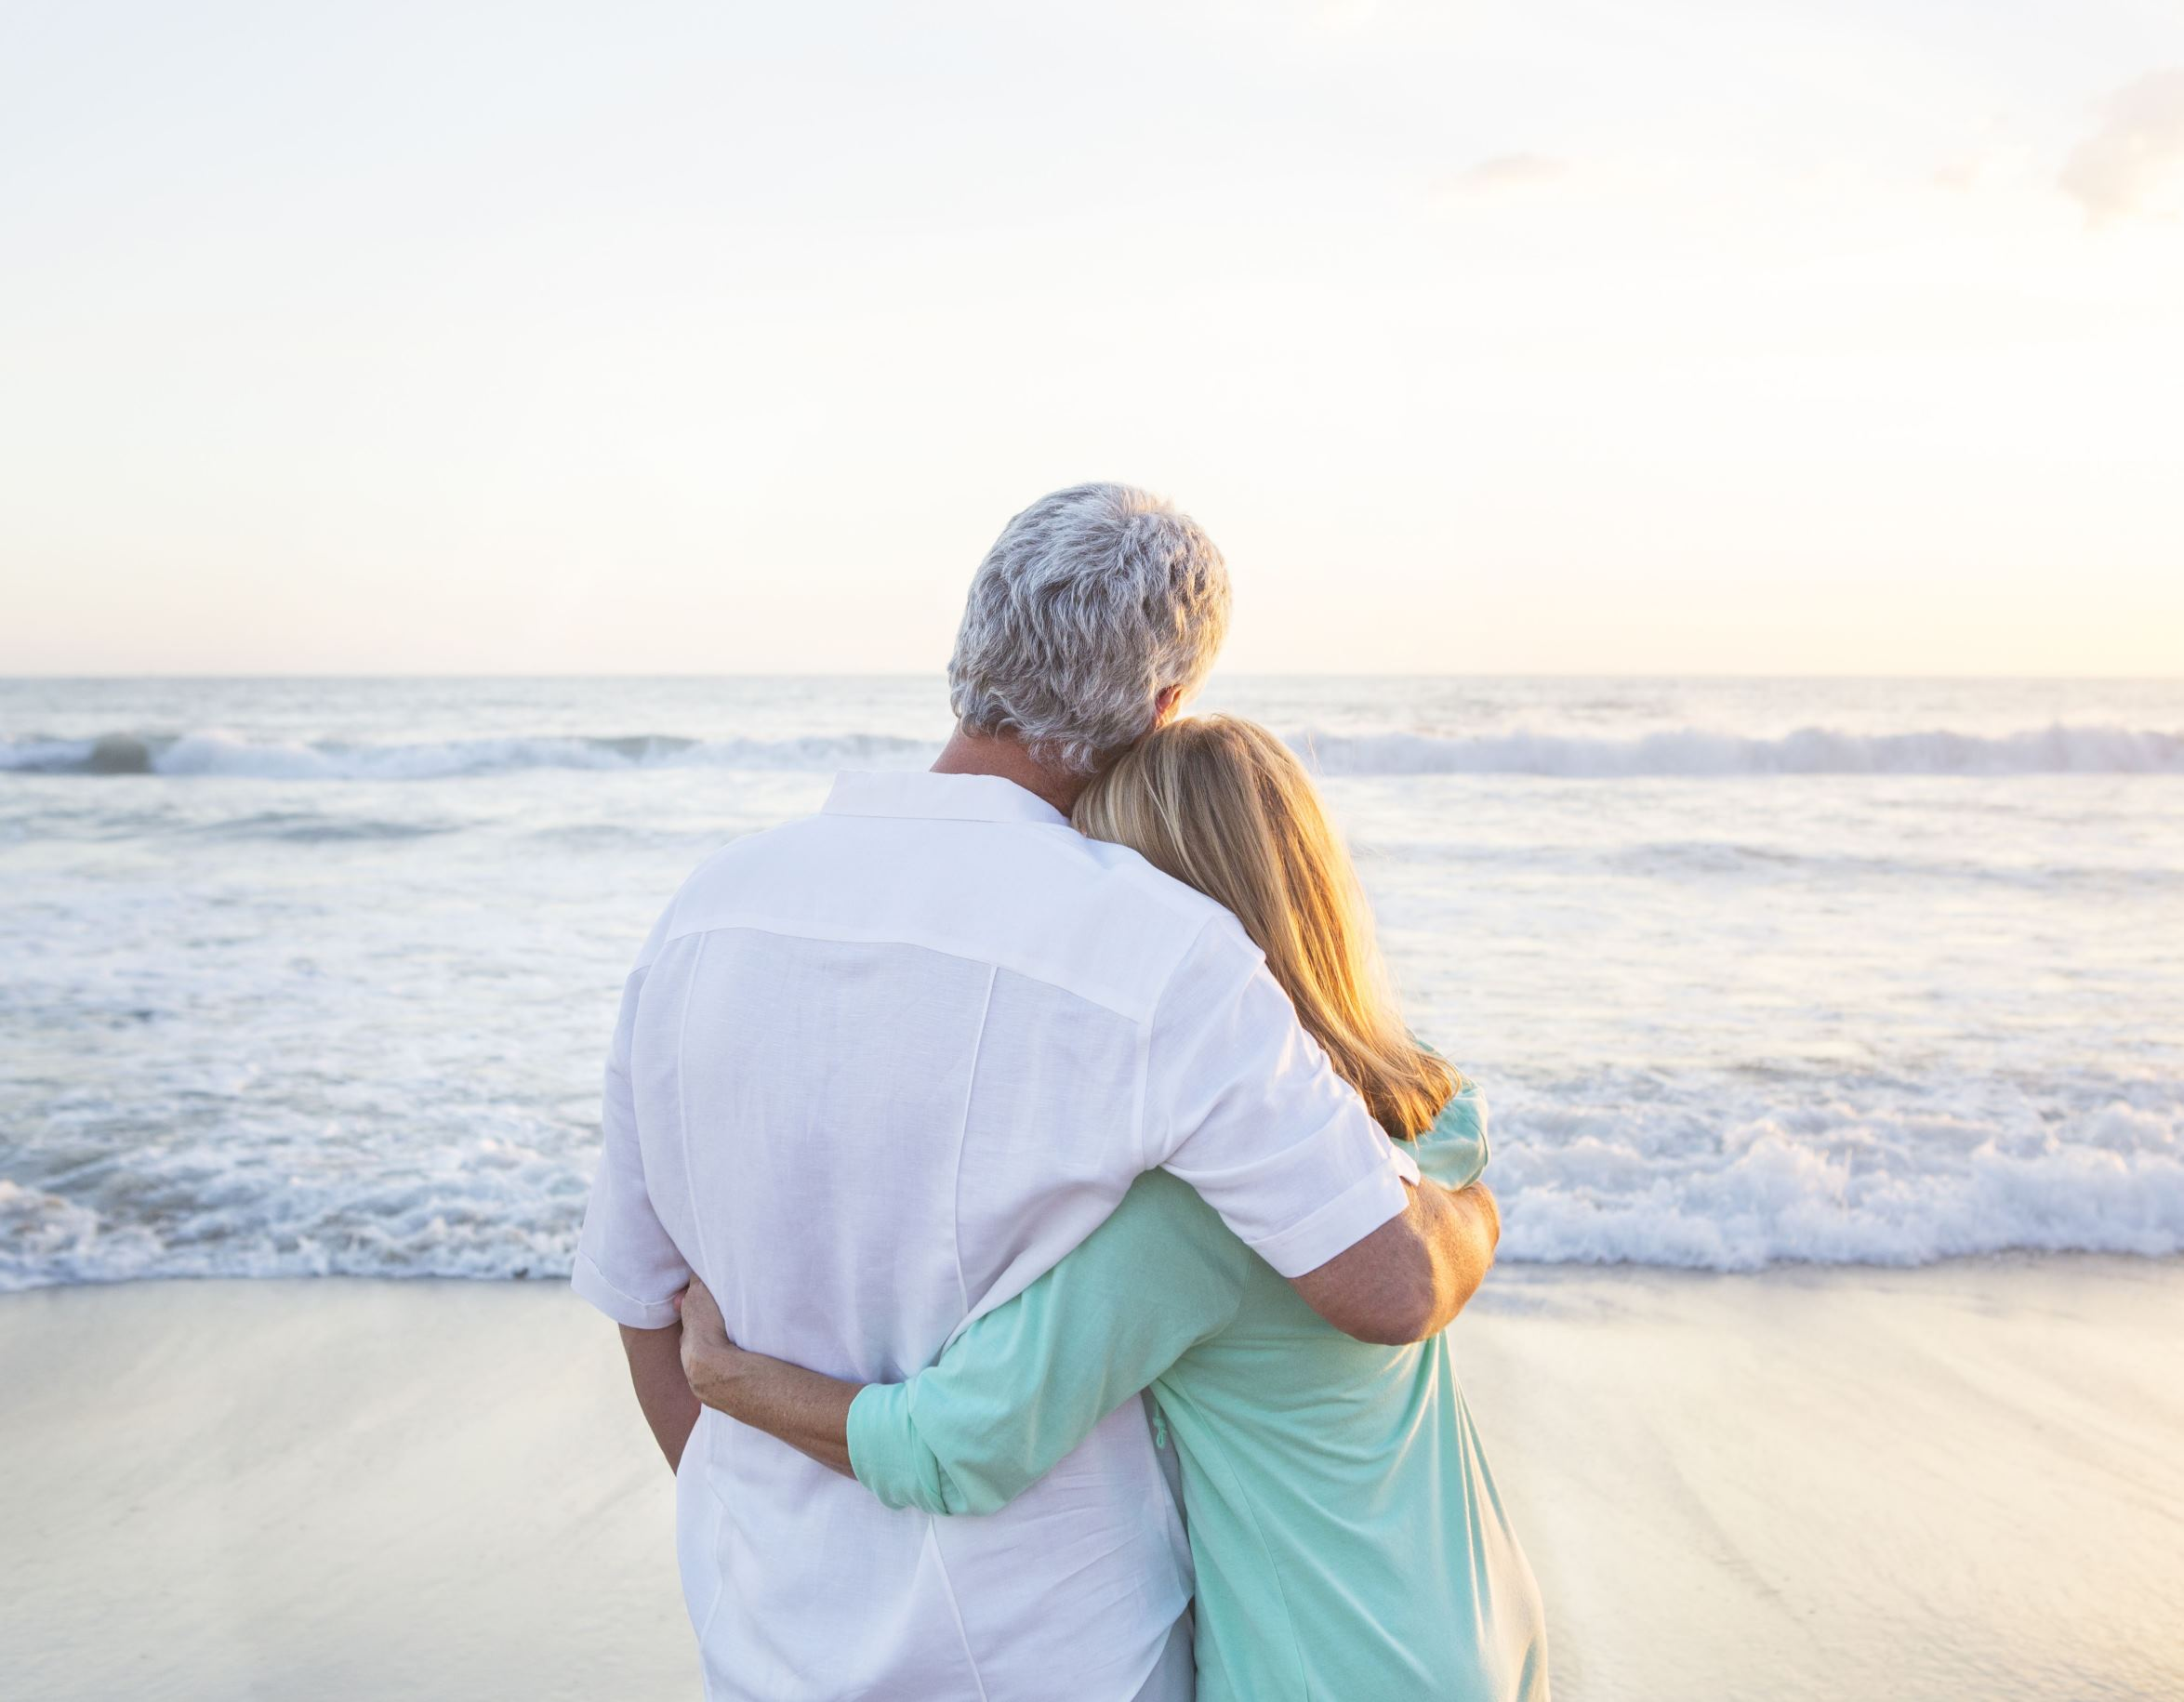 If you're married, you'll need to speak with your spouse to make sure your retirement plans are aligned.